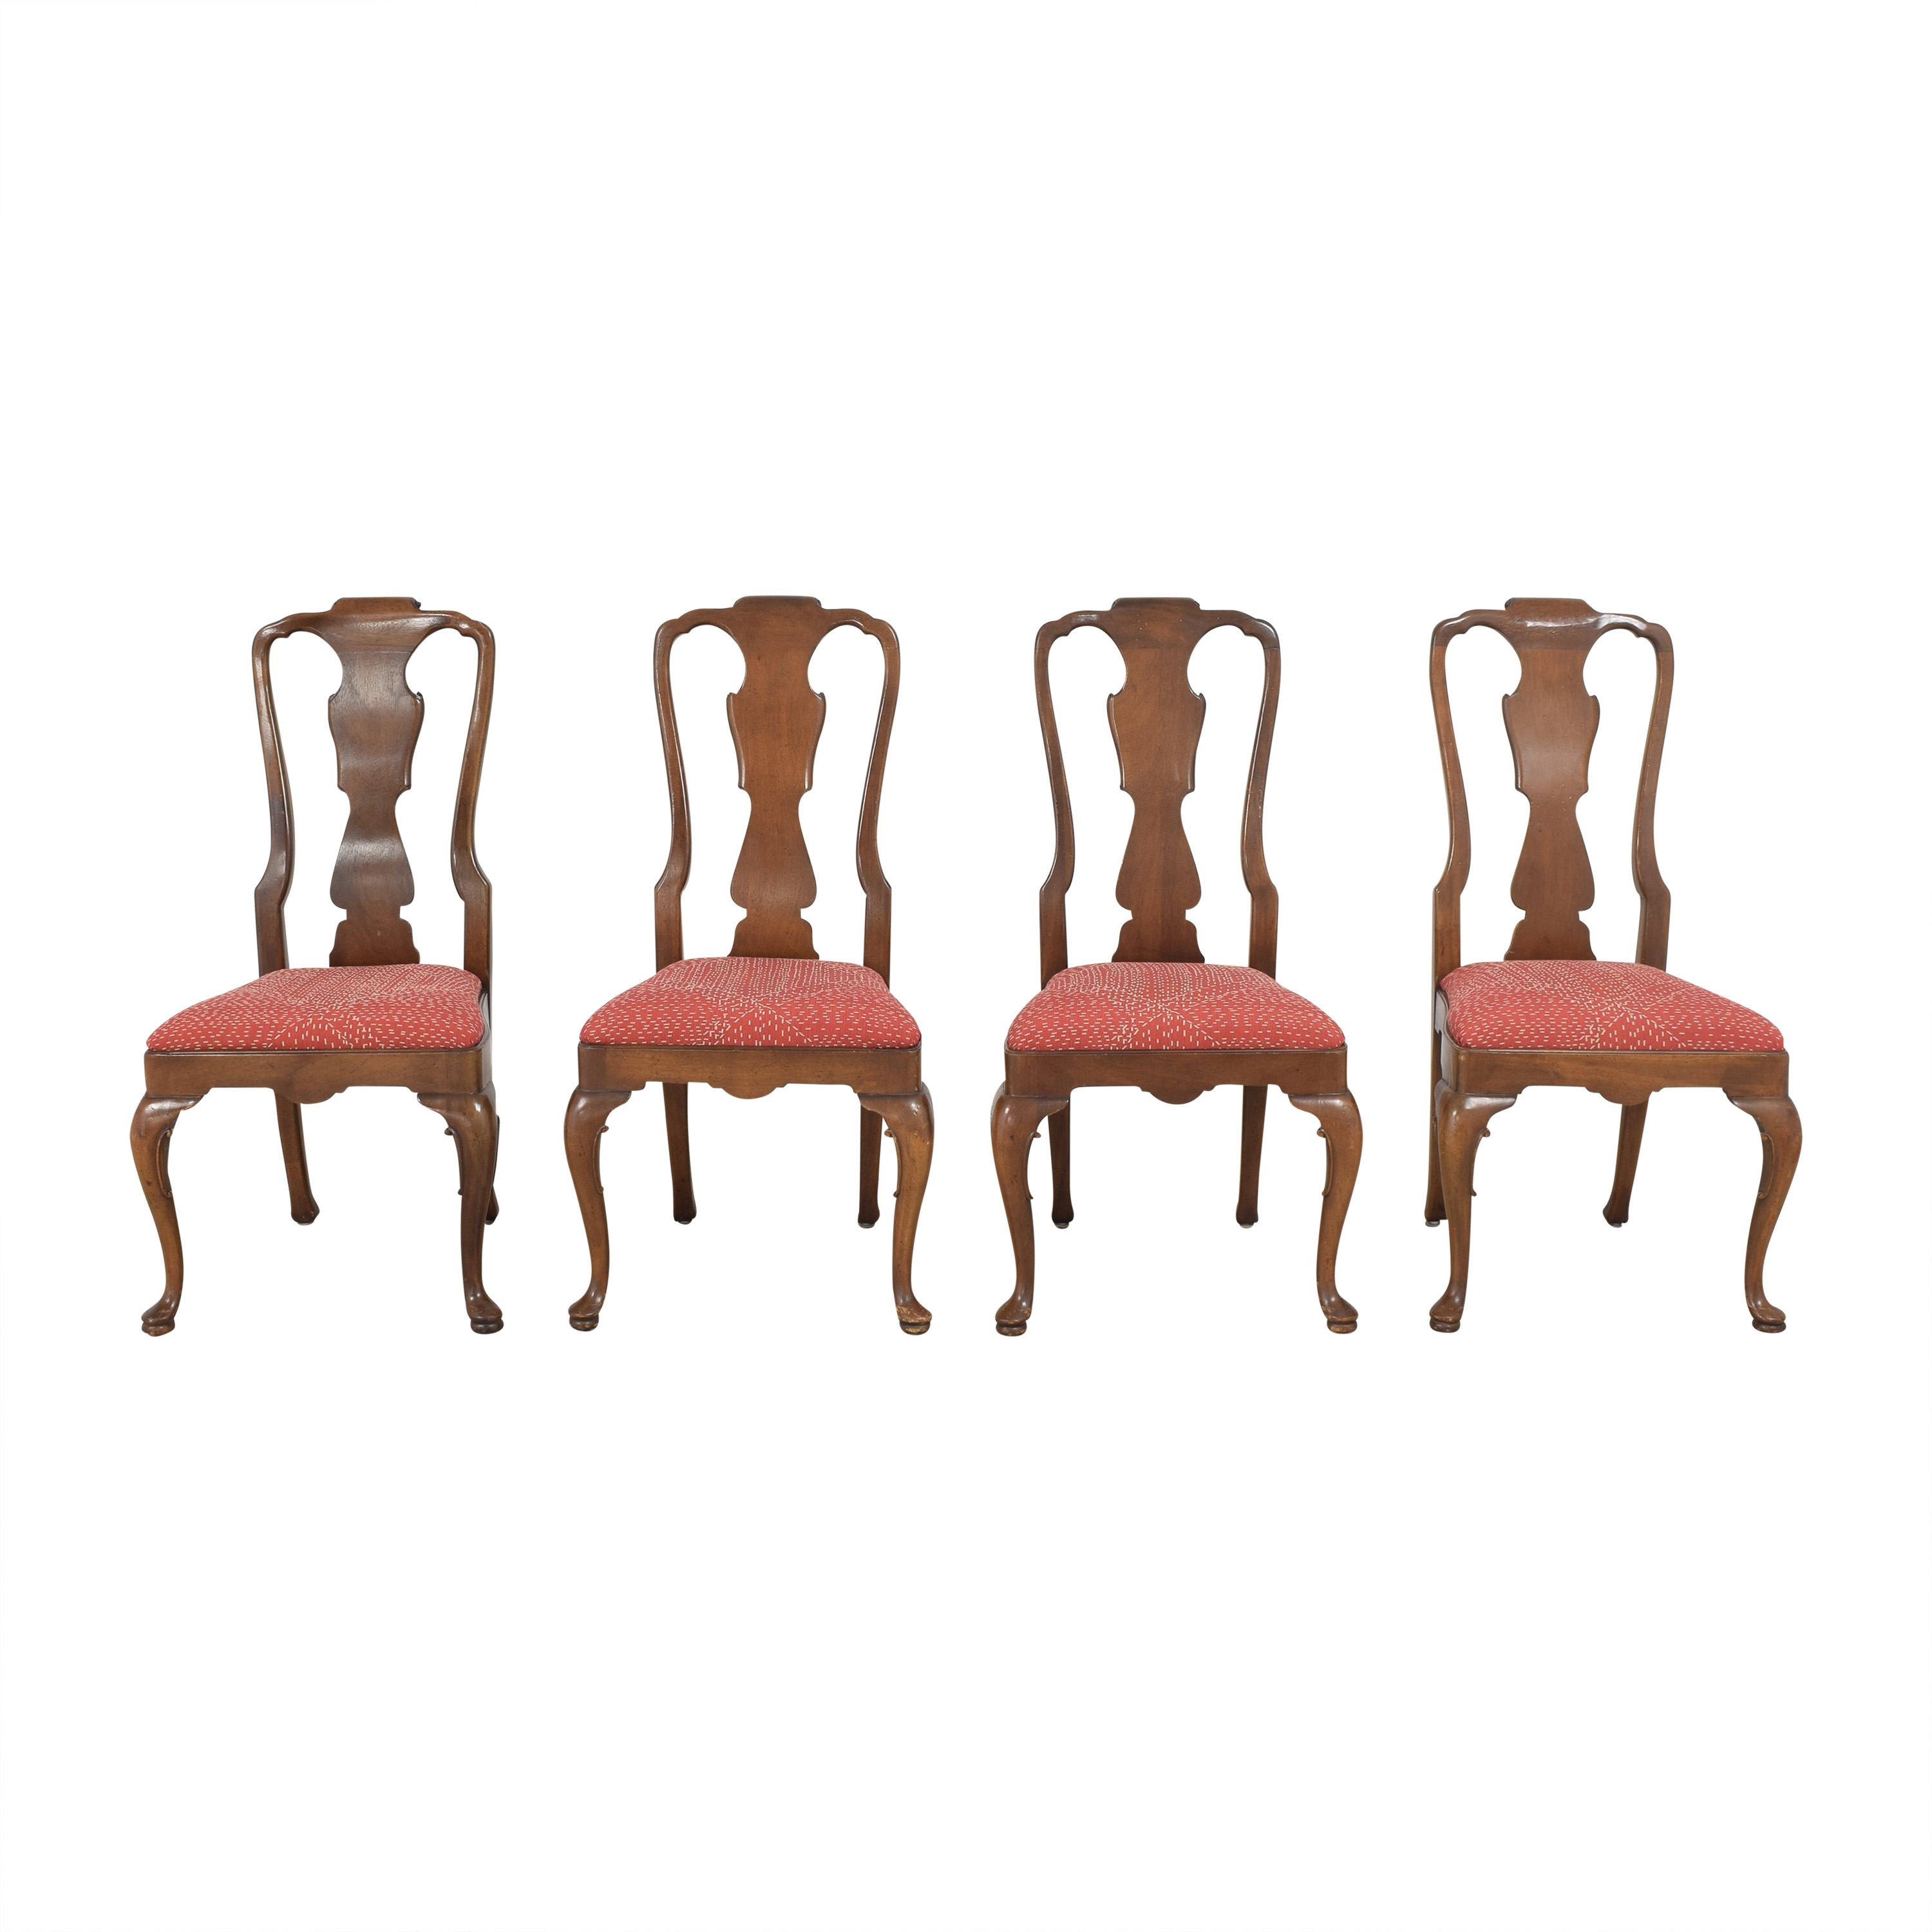 Henredon Furniture Queen Anne Dining Side Chairs / Dining Chairs